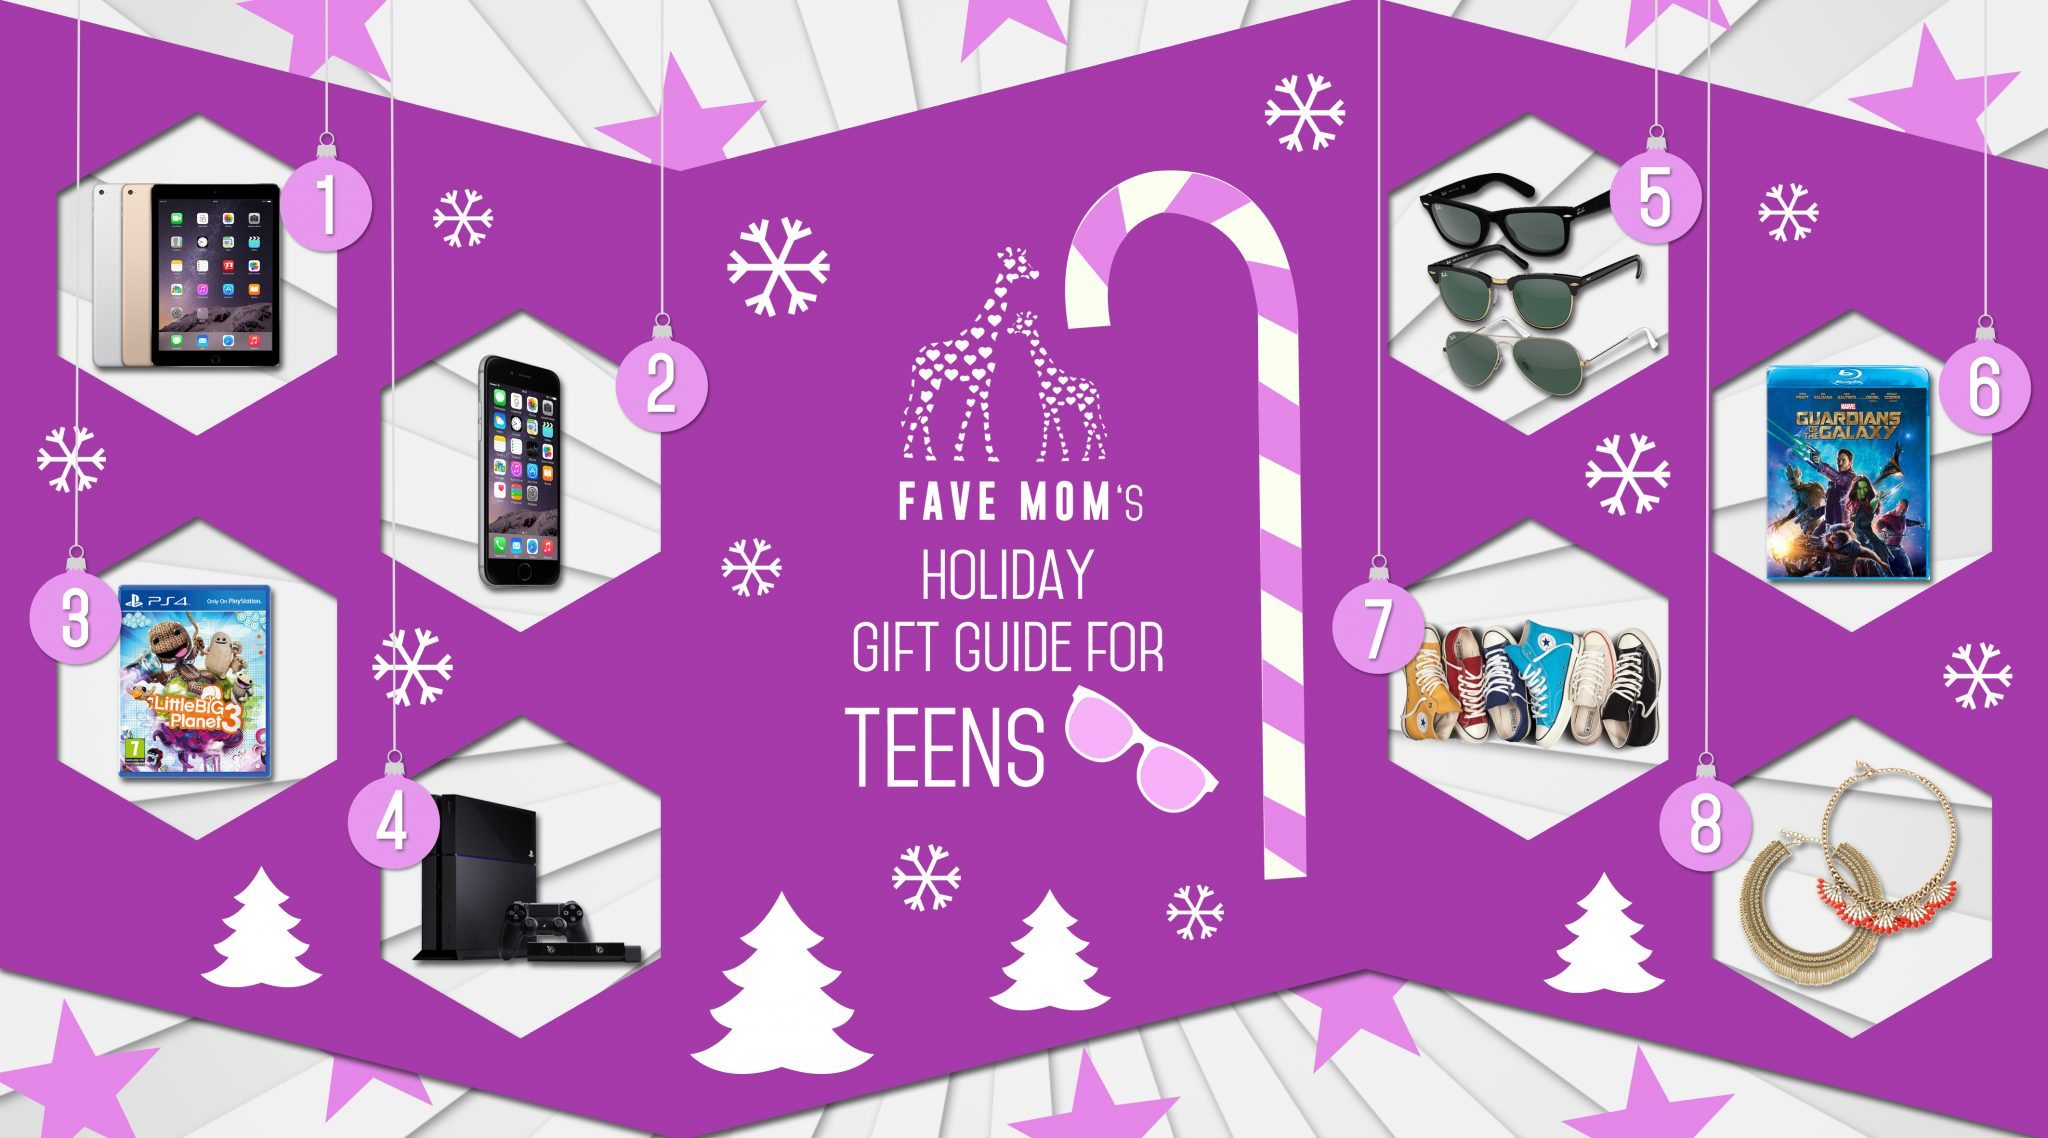 FaVe Mom's Holiday Gift Guide for Teens